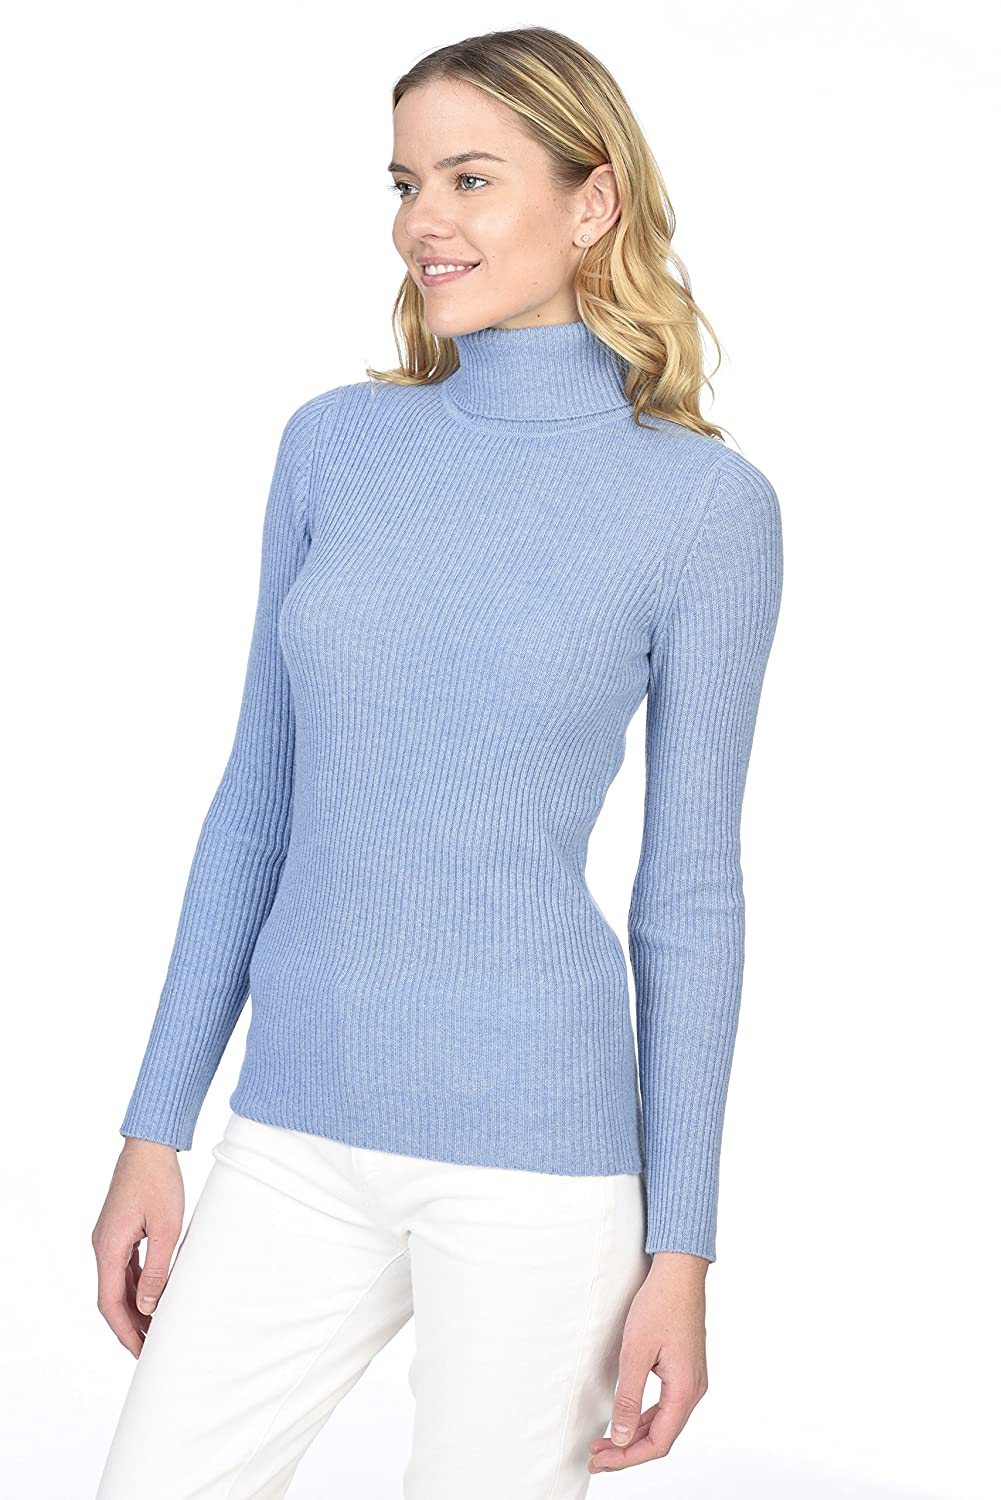 99c93166beab State Cashmere Women s 100% Pure Cashmere Long Sleeve Pullover Ribbed  Turtleneck Sweater at Amazon Women s Clothing store